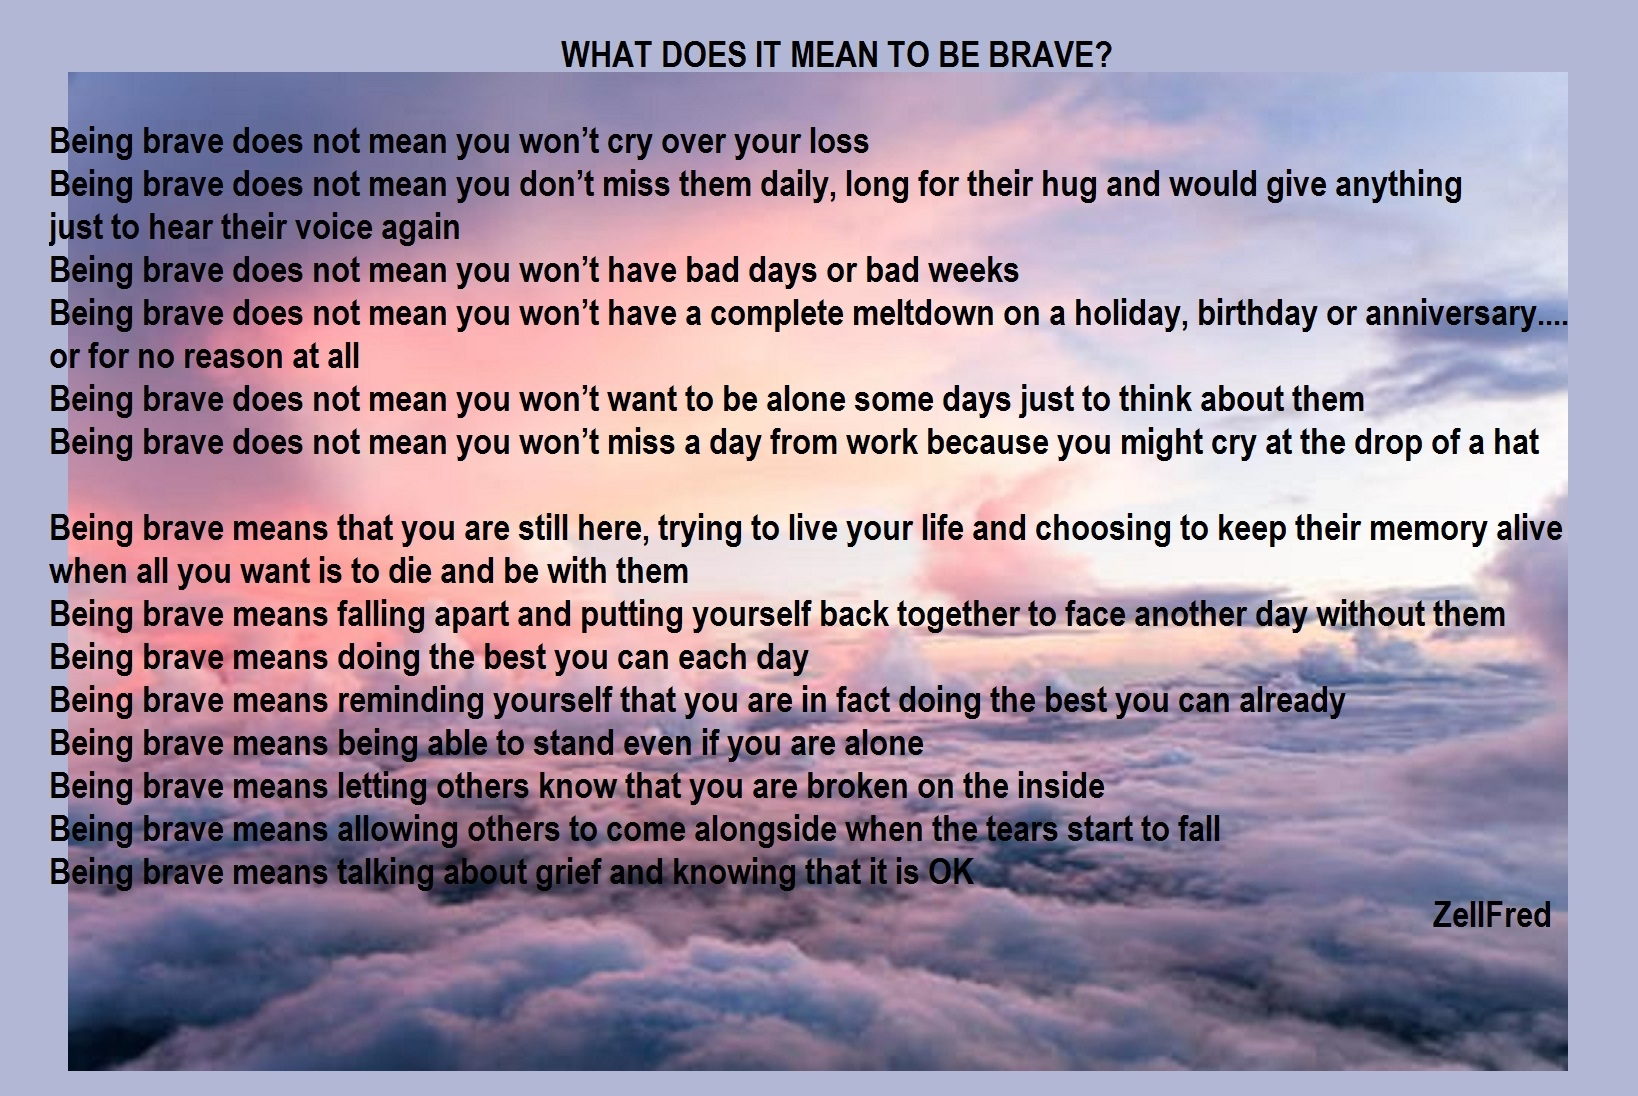 What does it mean to be brave? | The Grief Toolbox